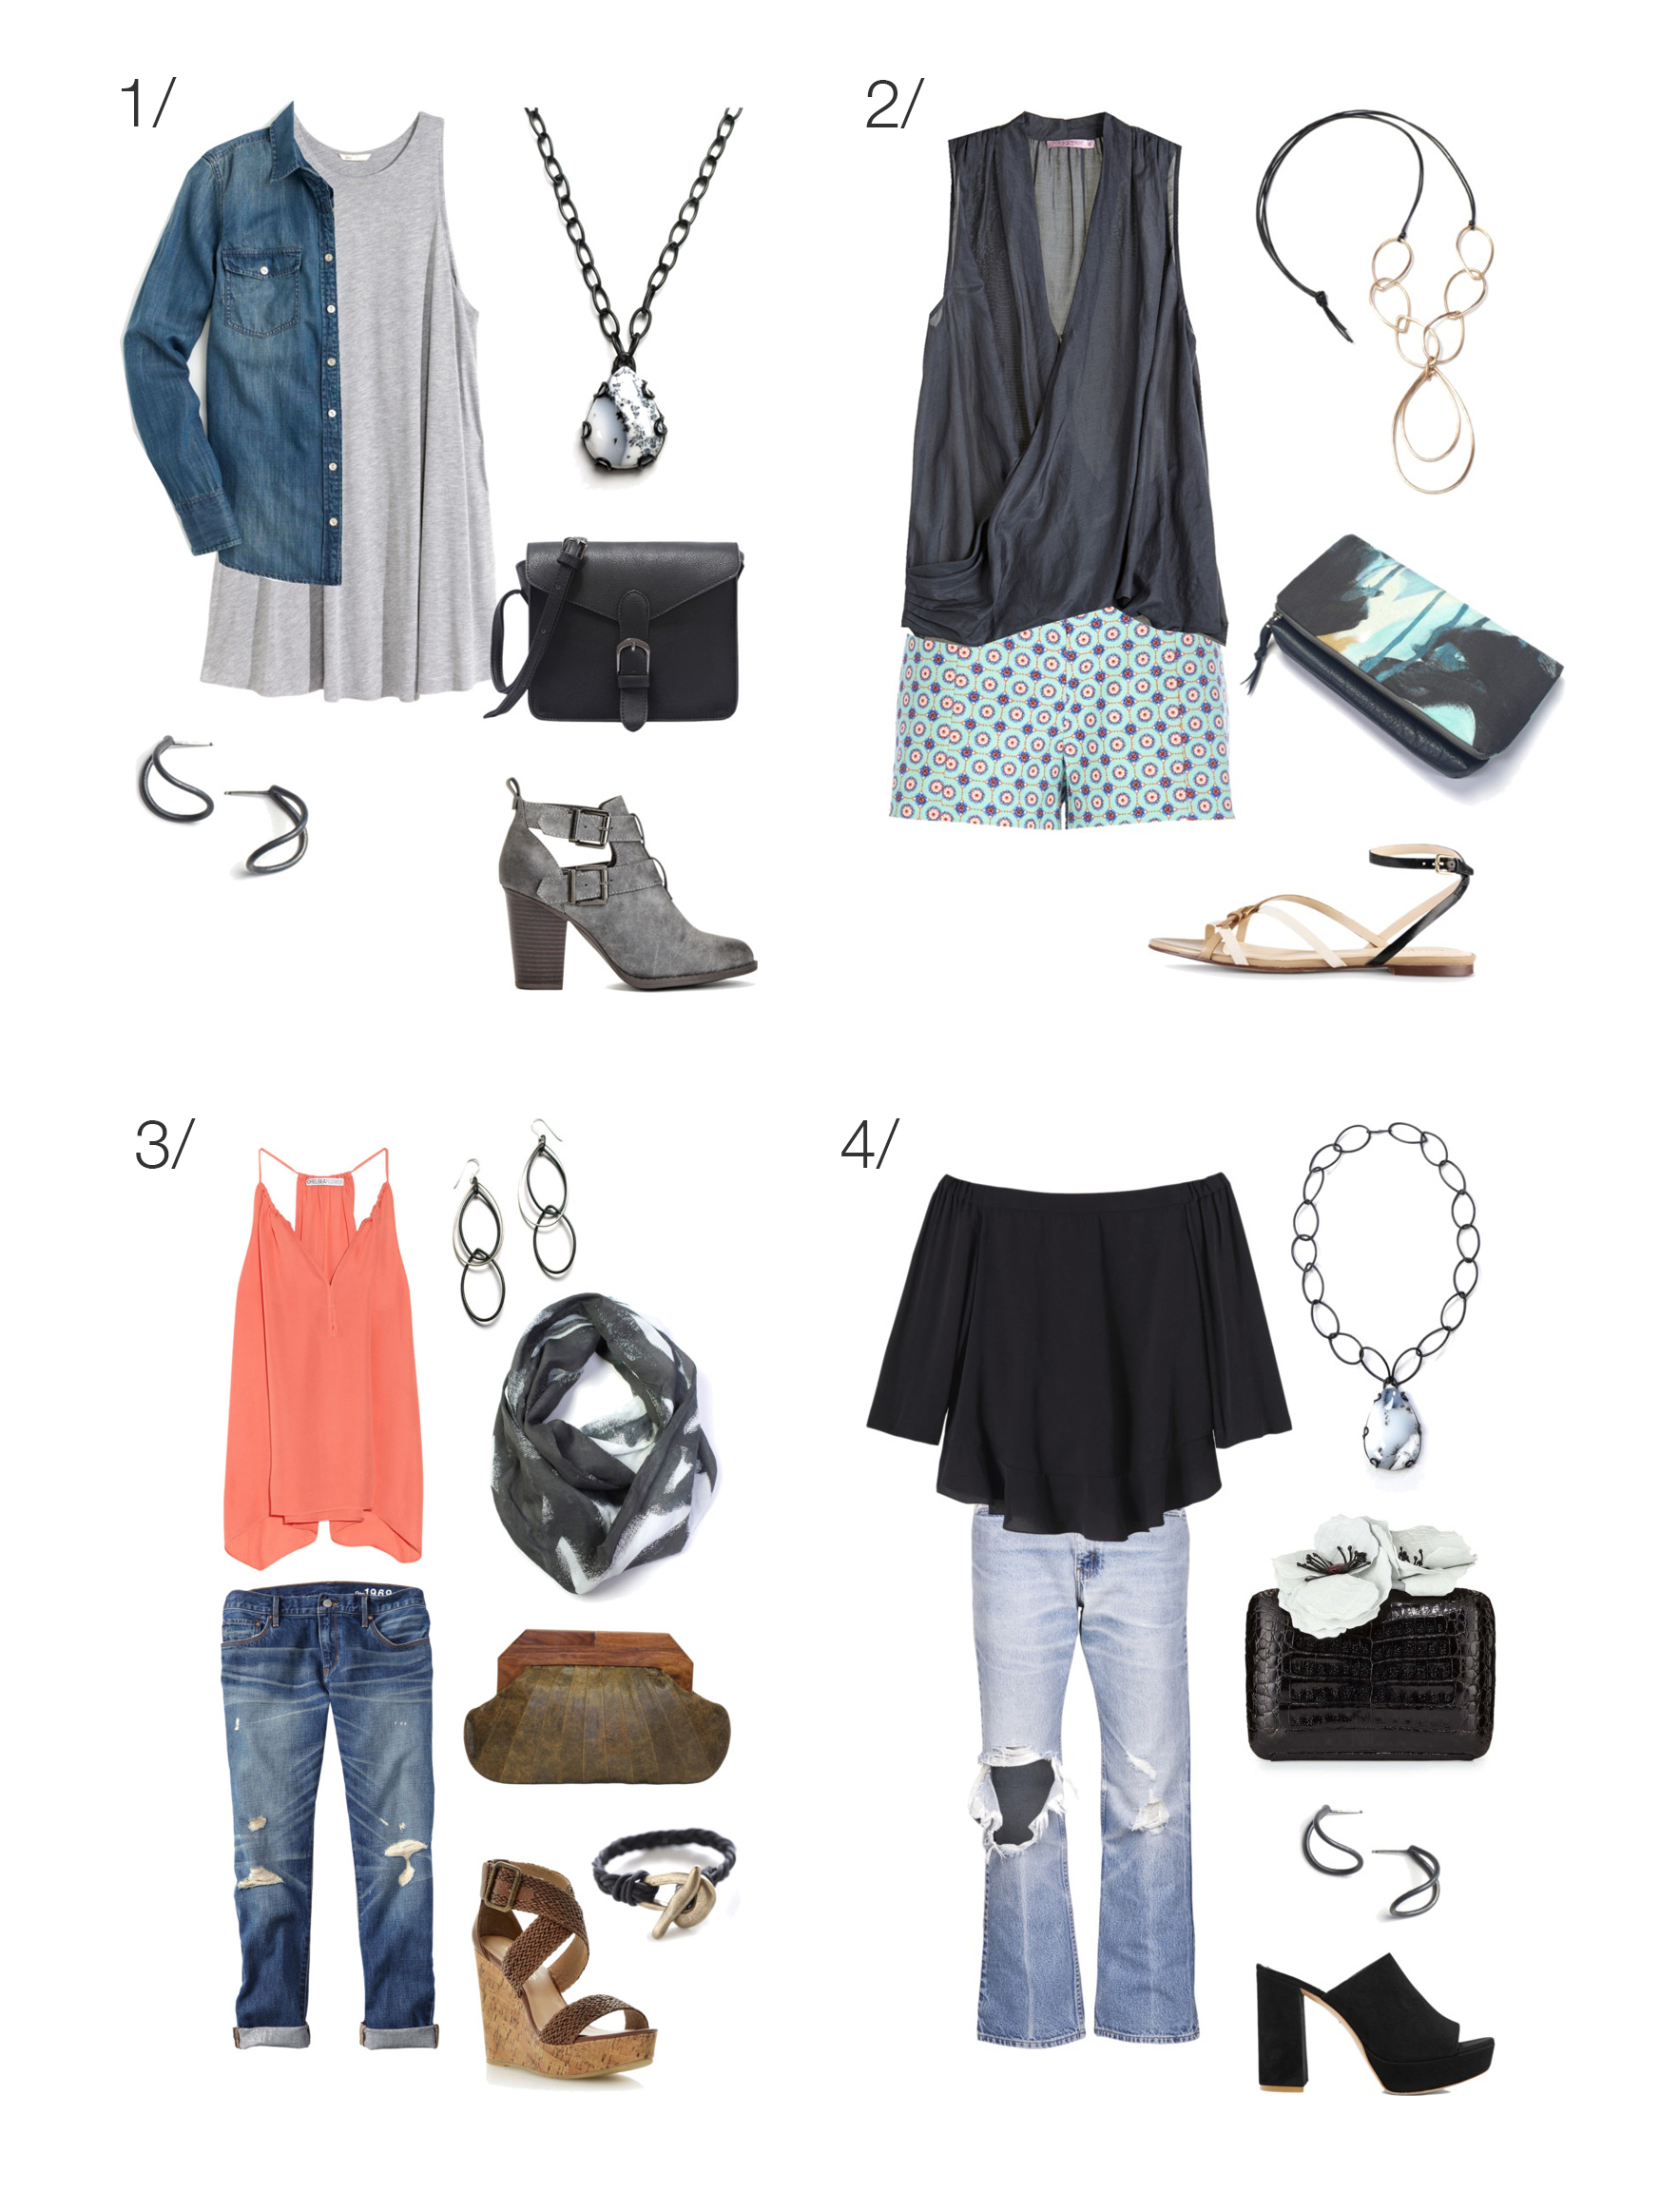 50 Creative Date Ideas Youve Never Thought Of  StyleCaster